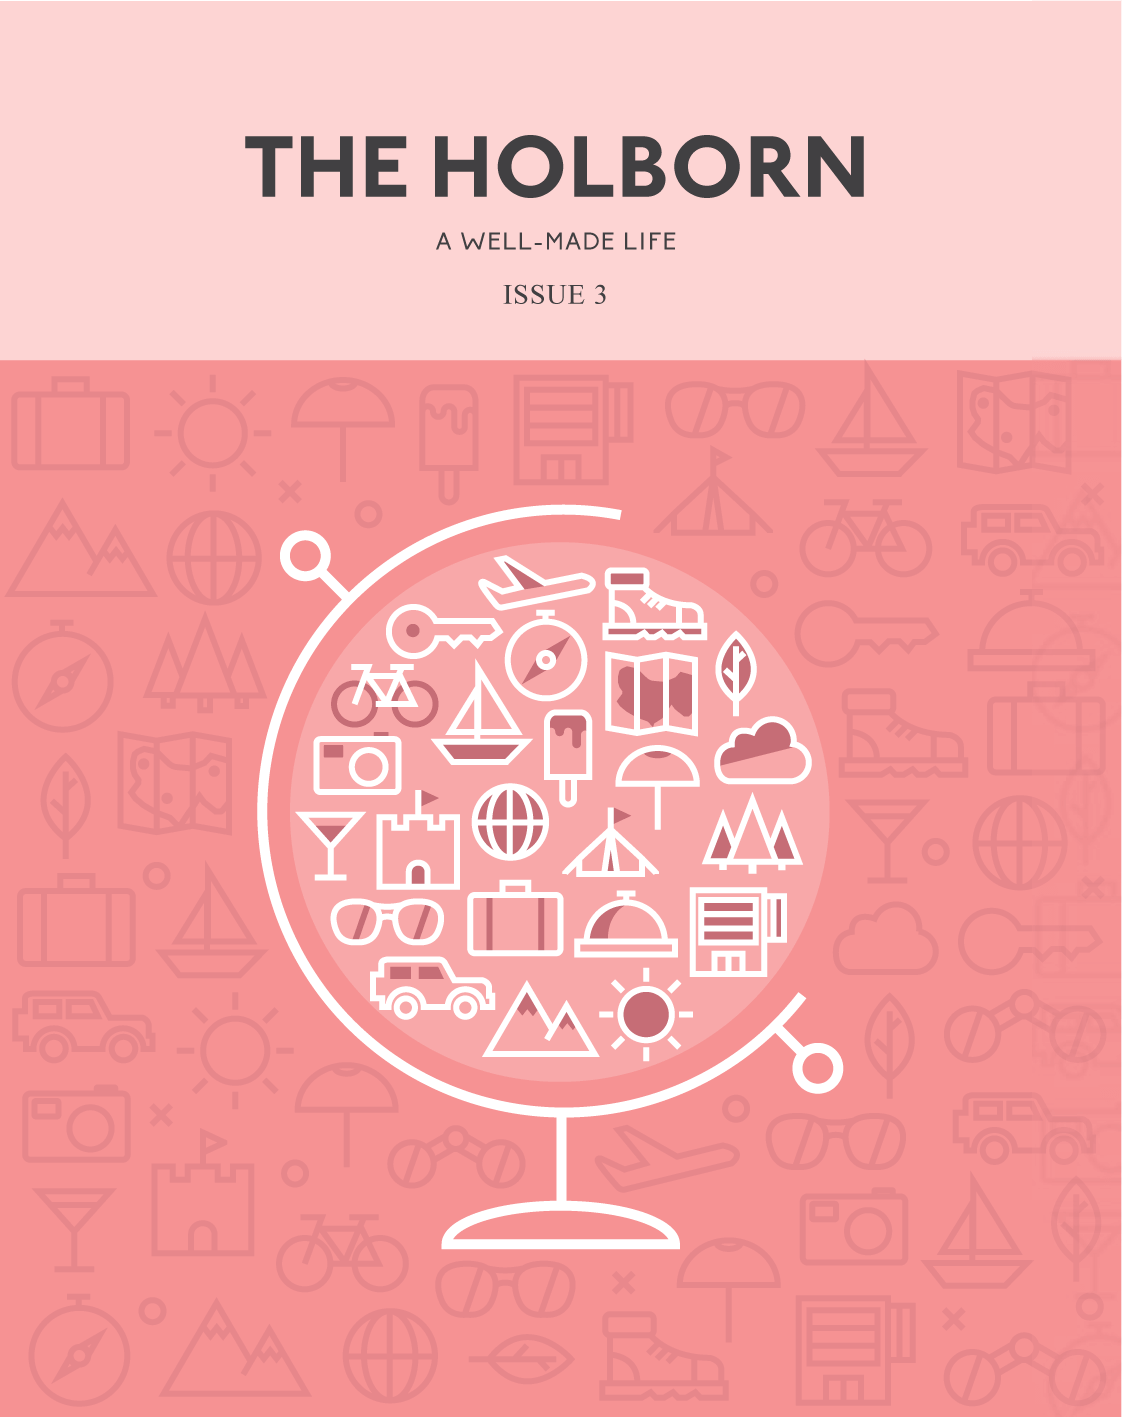 The_Holborn_Issue3